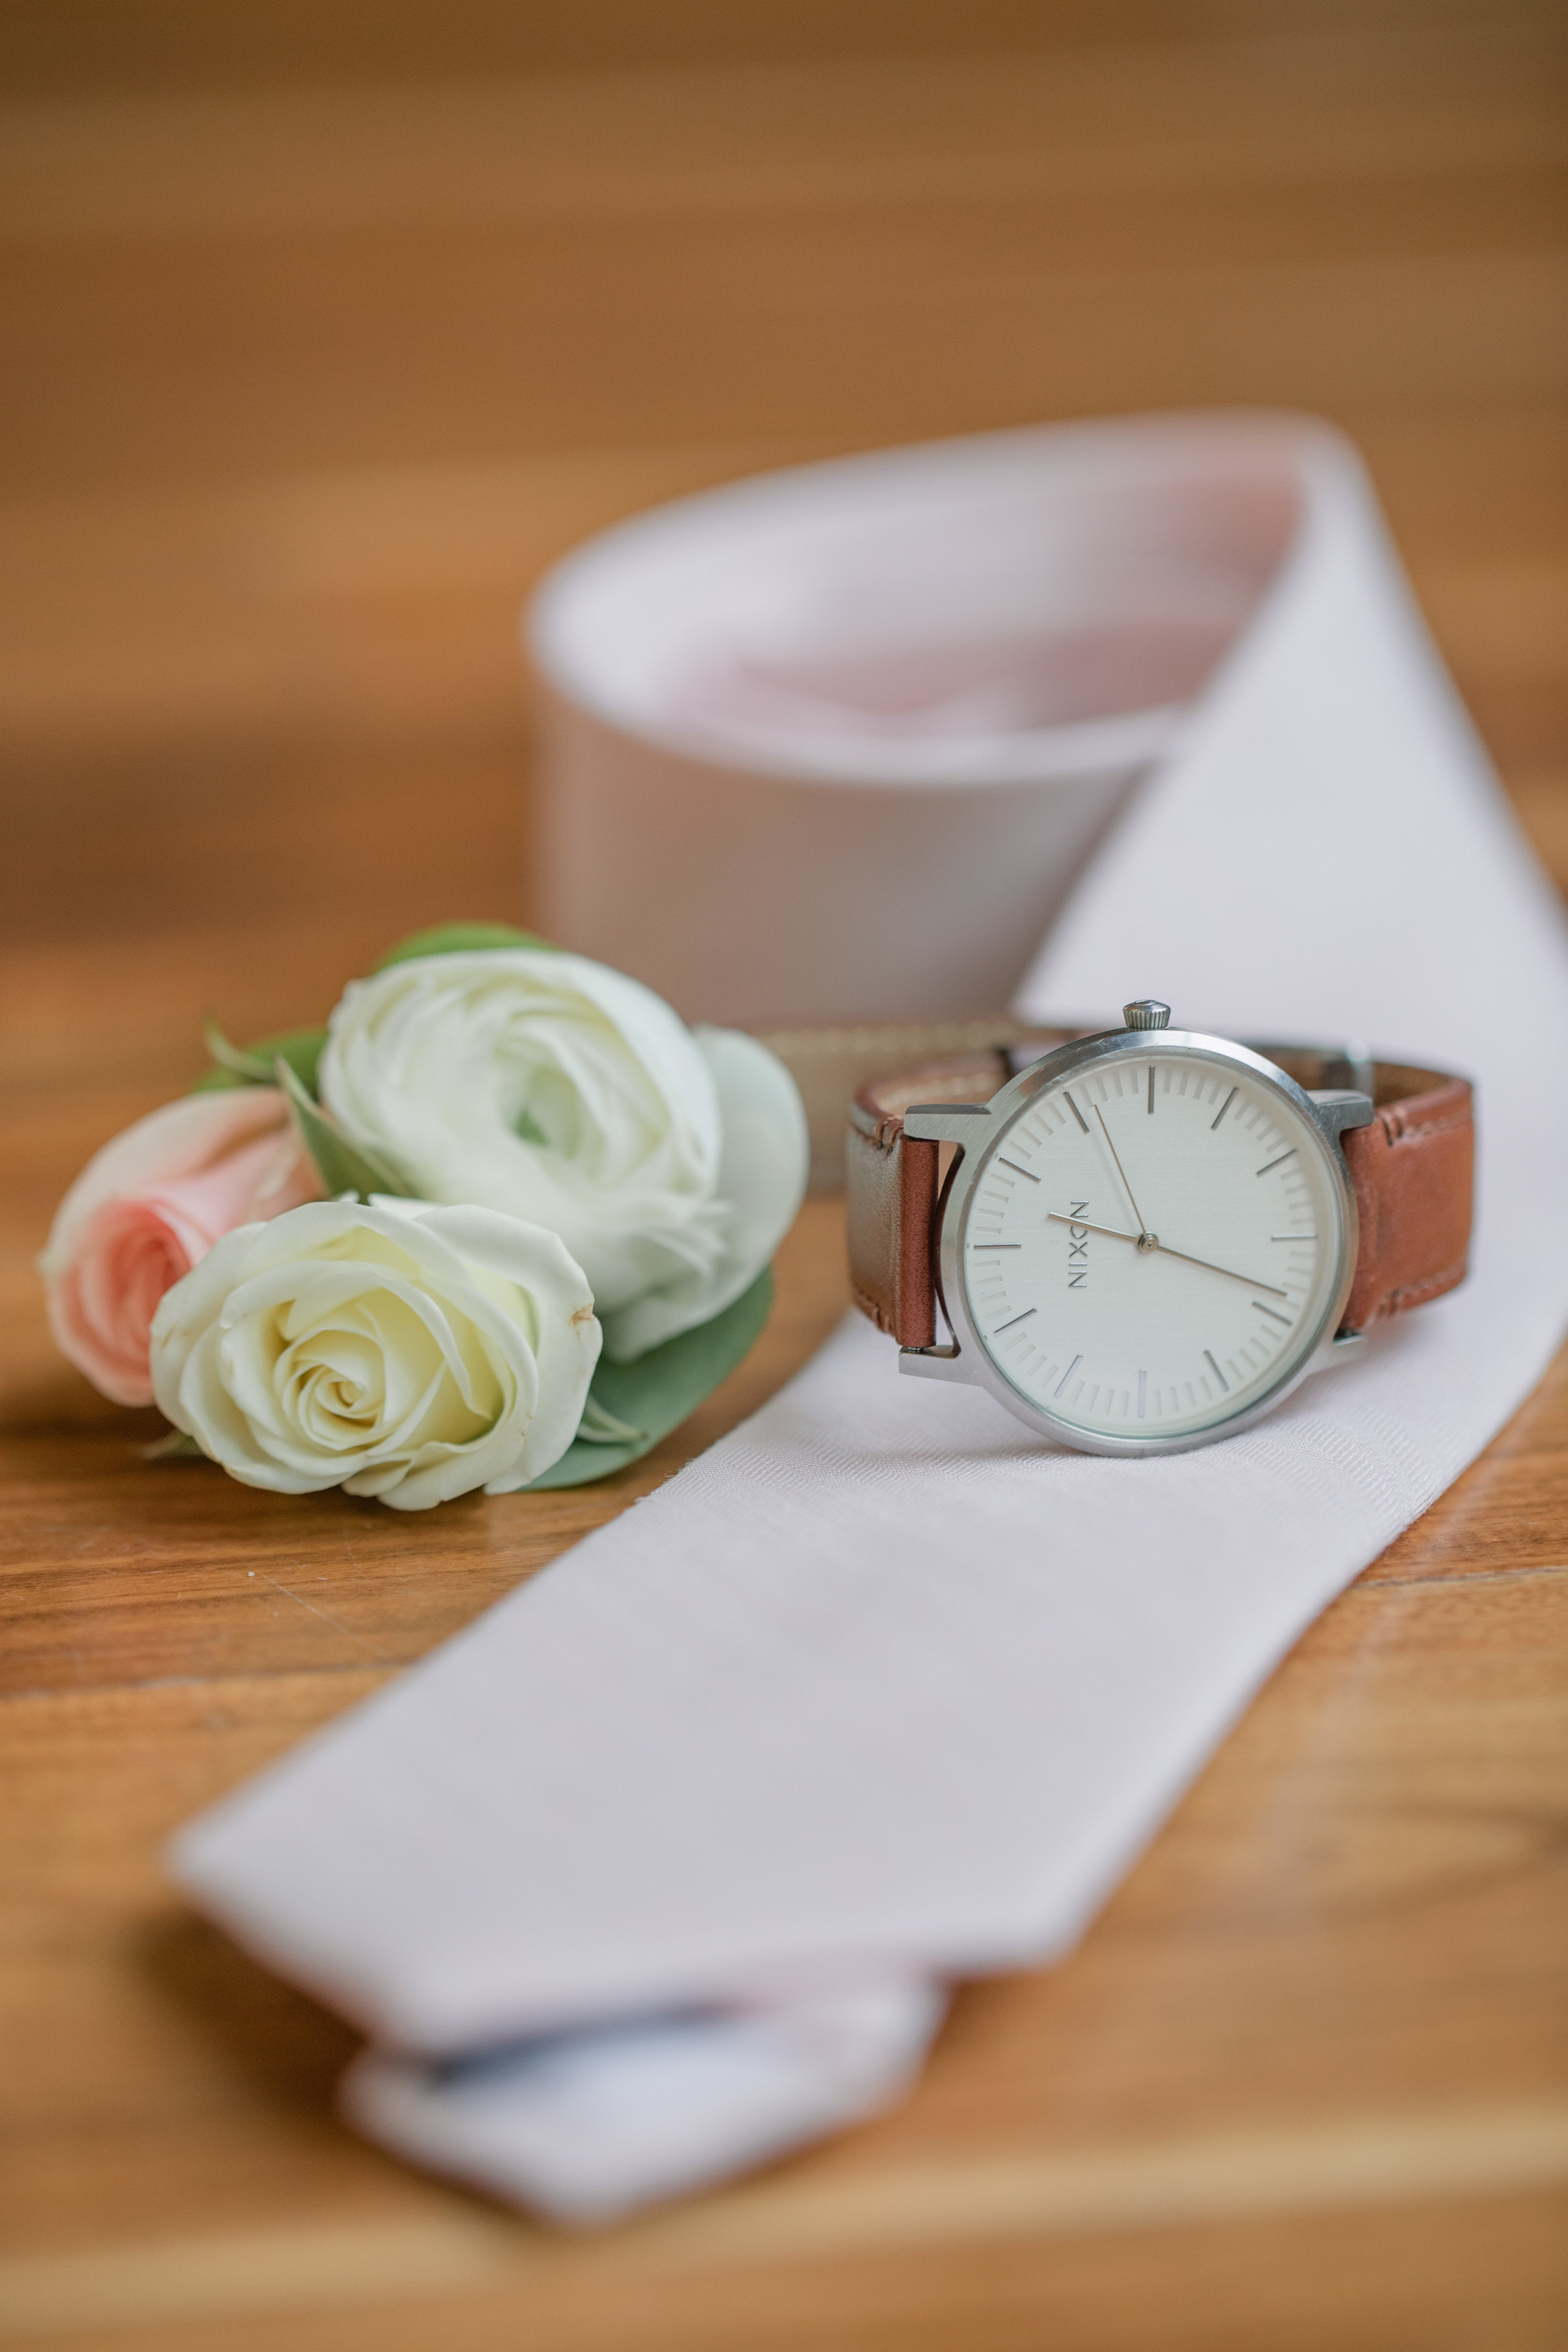 groom's flowers corsage and tie with watch